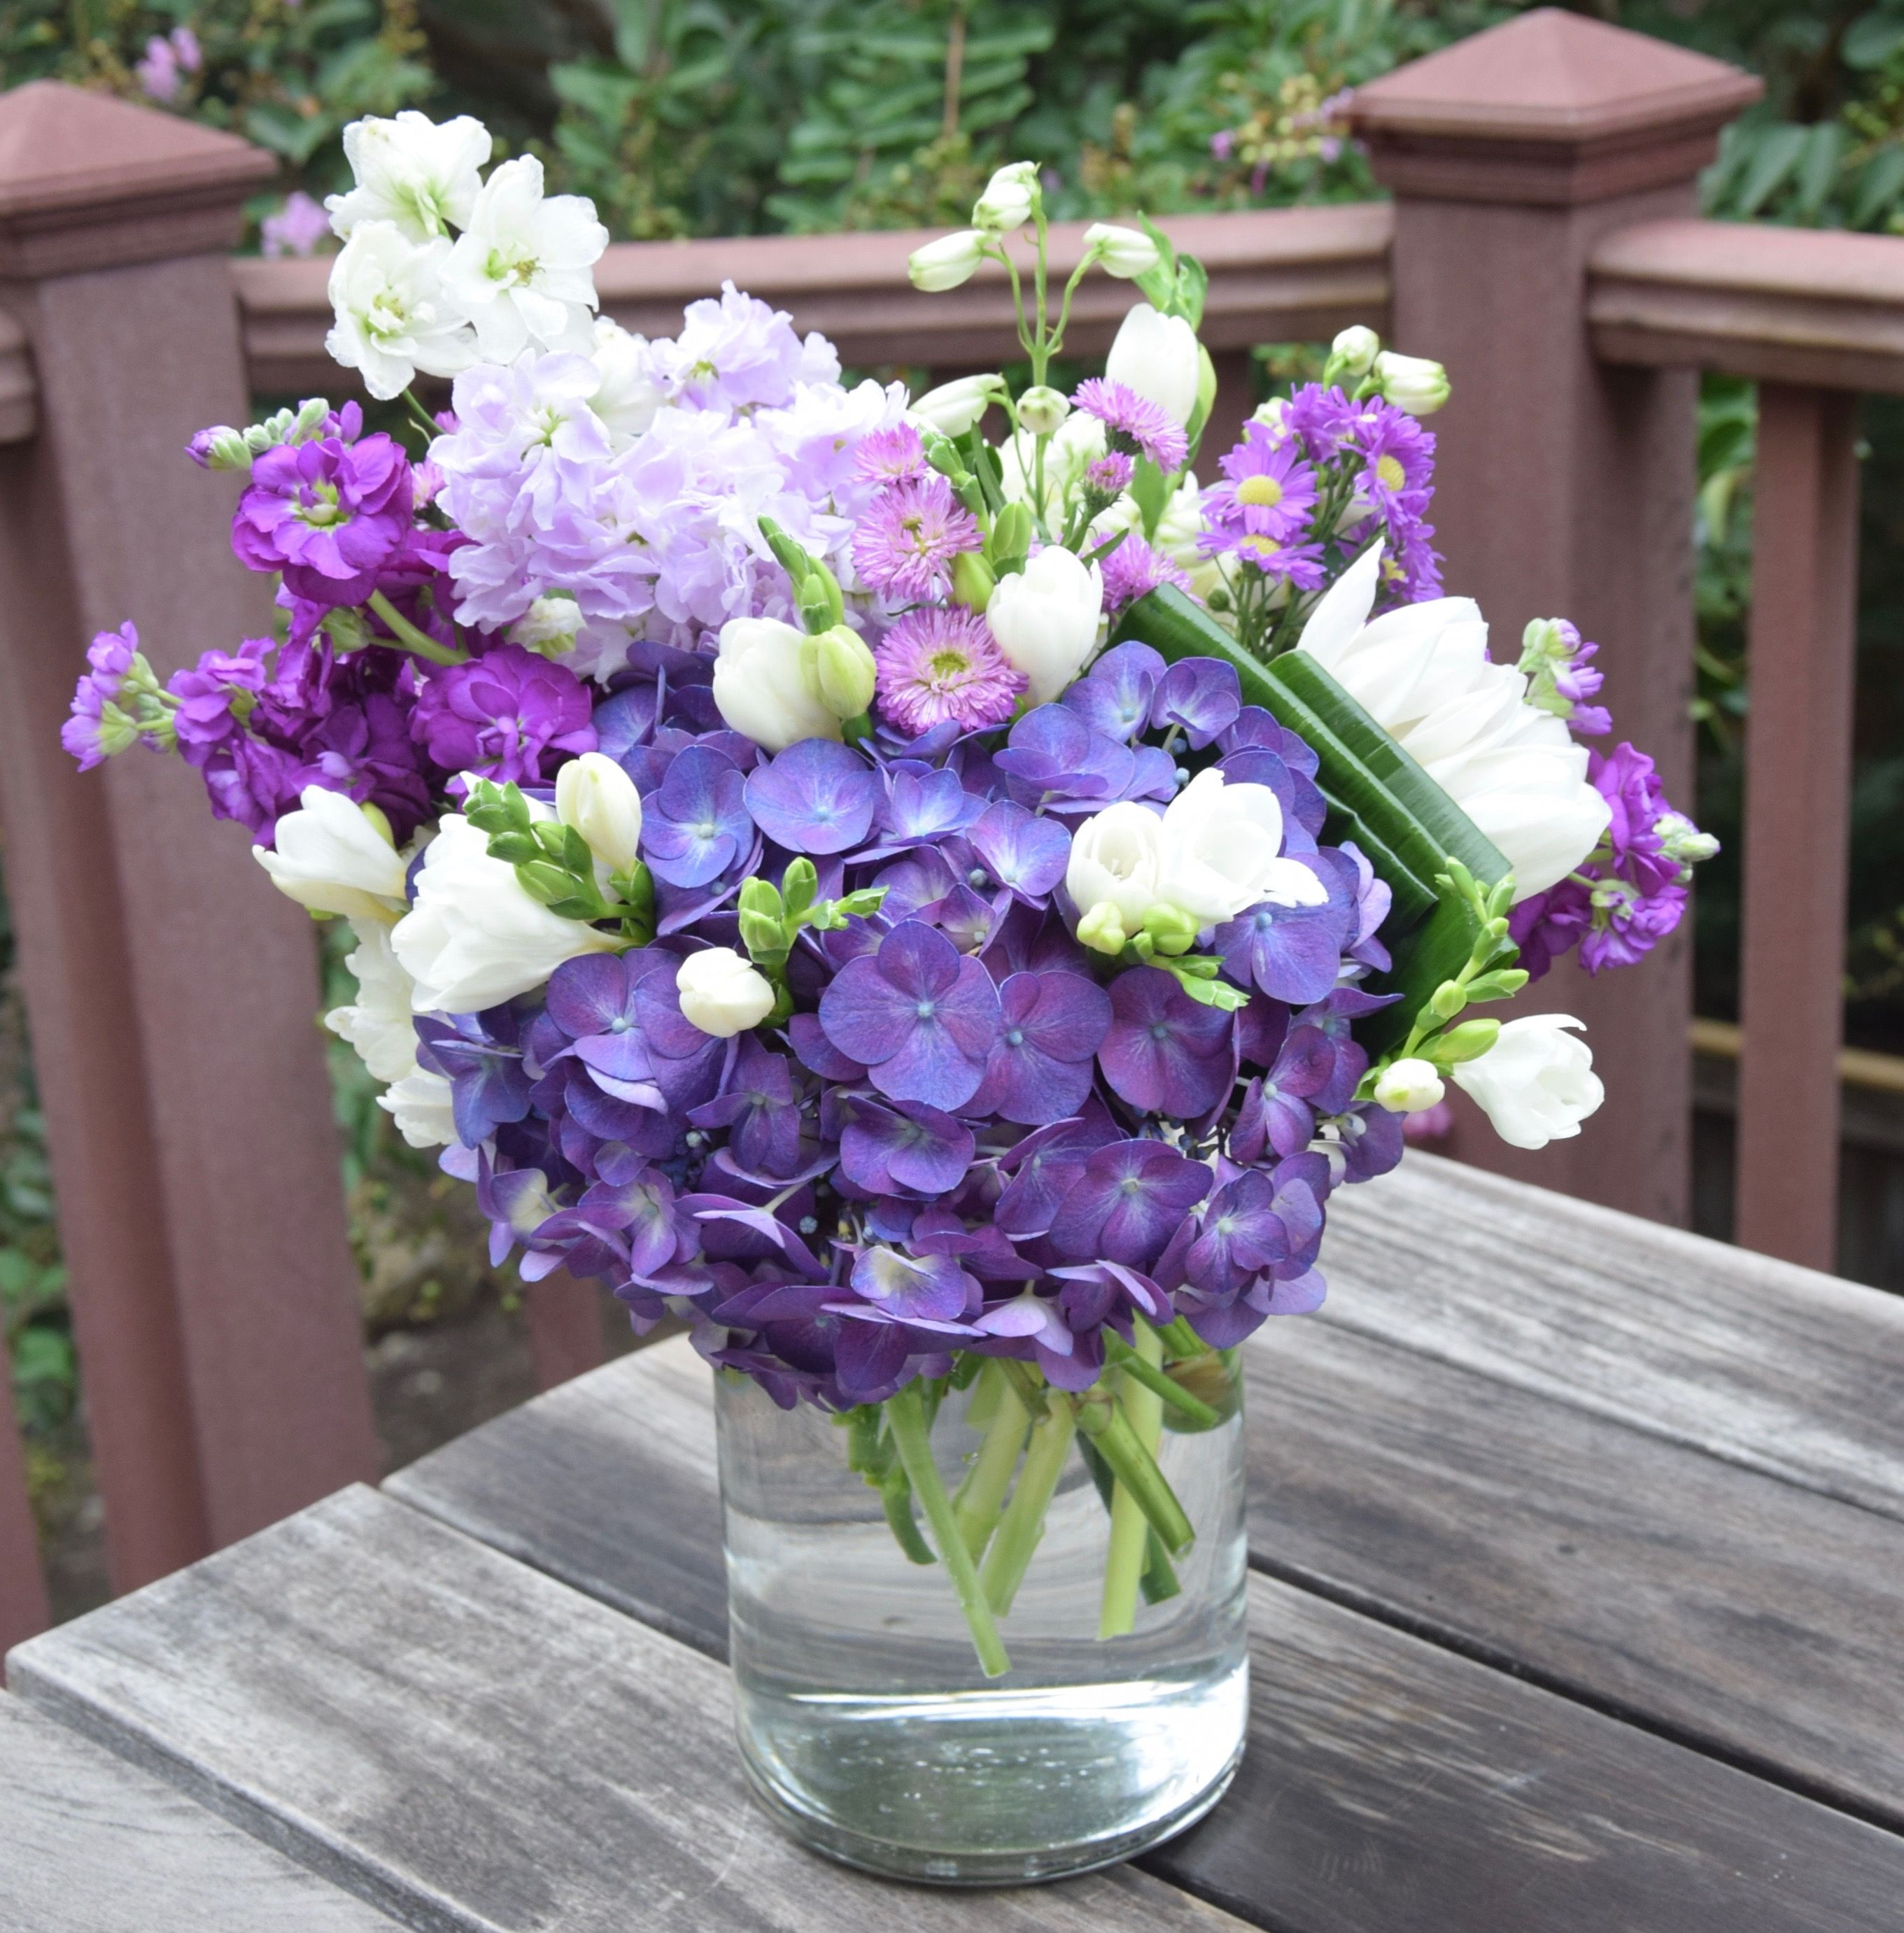 Flower bouquet in the shades of purple and white. Flower